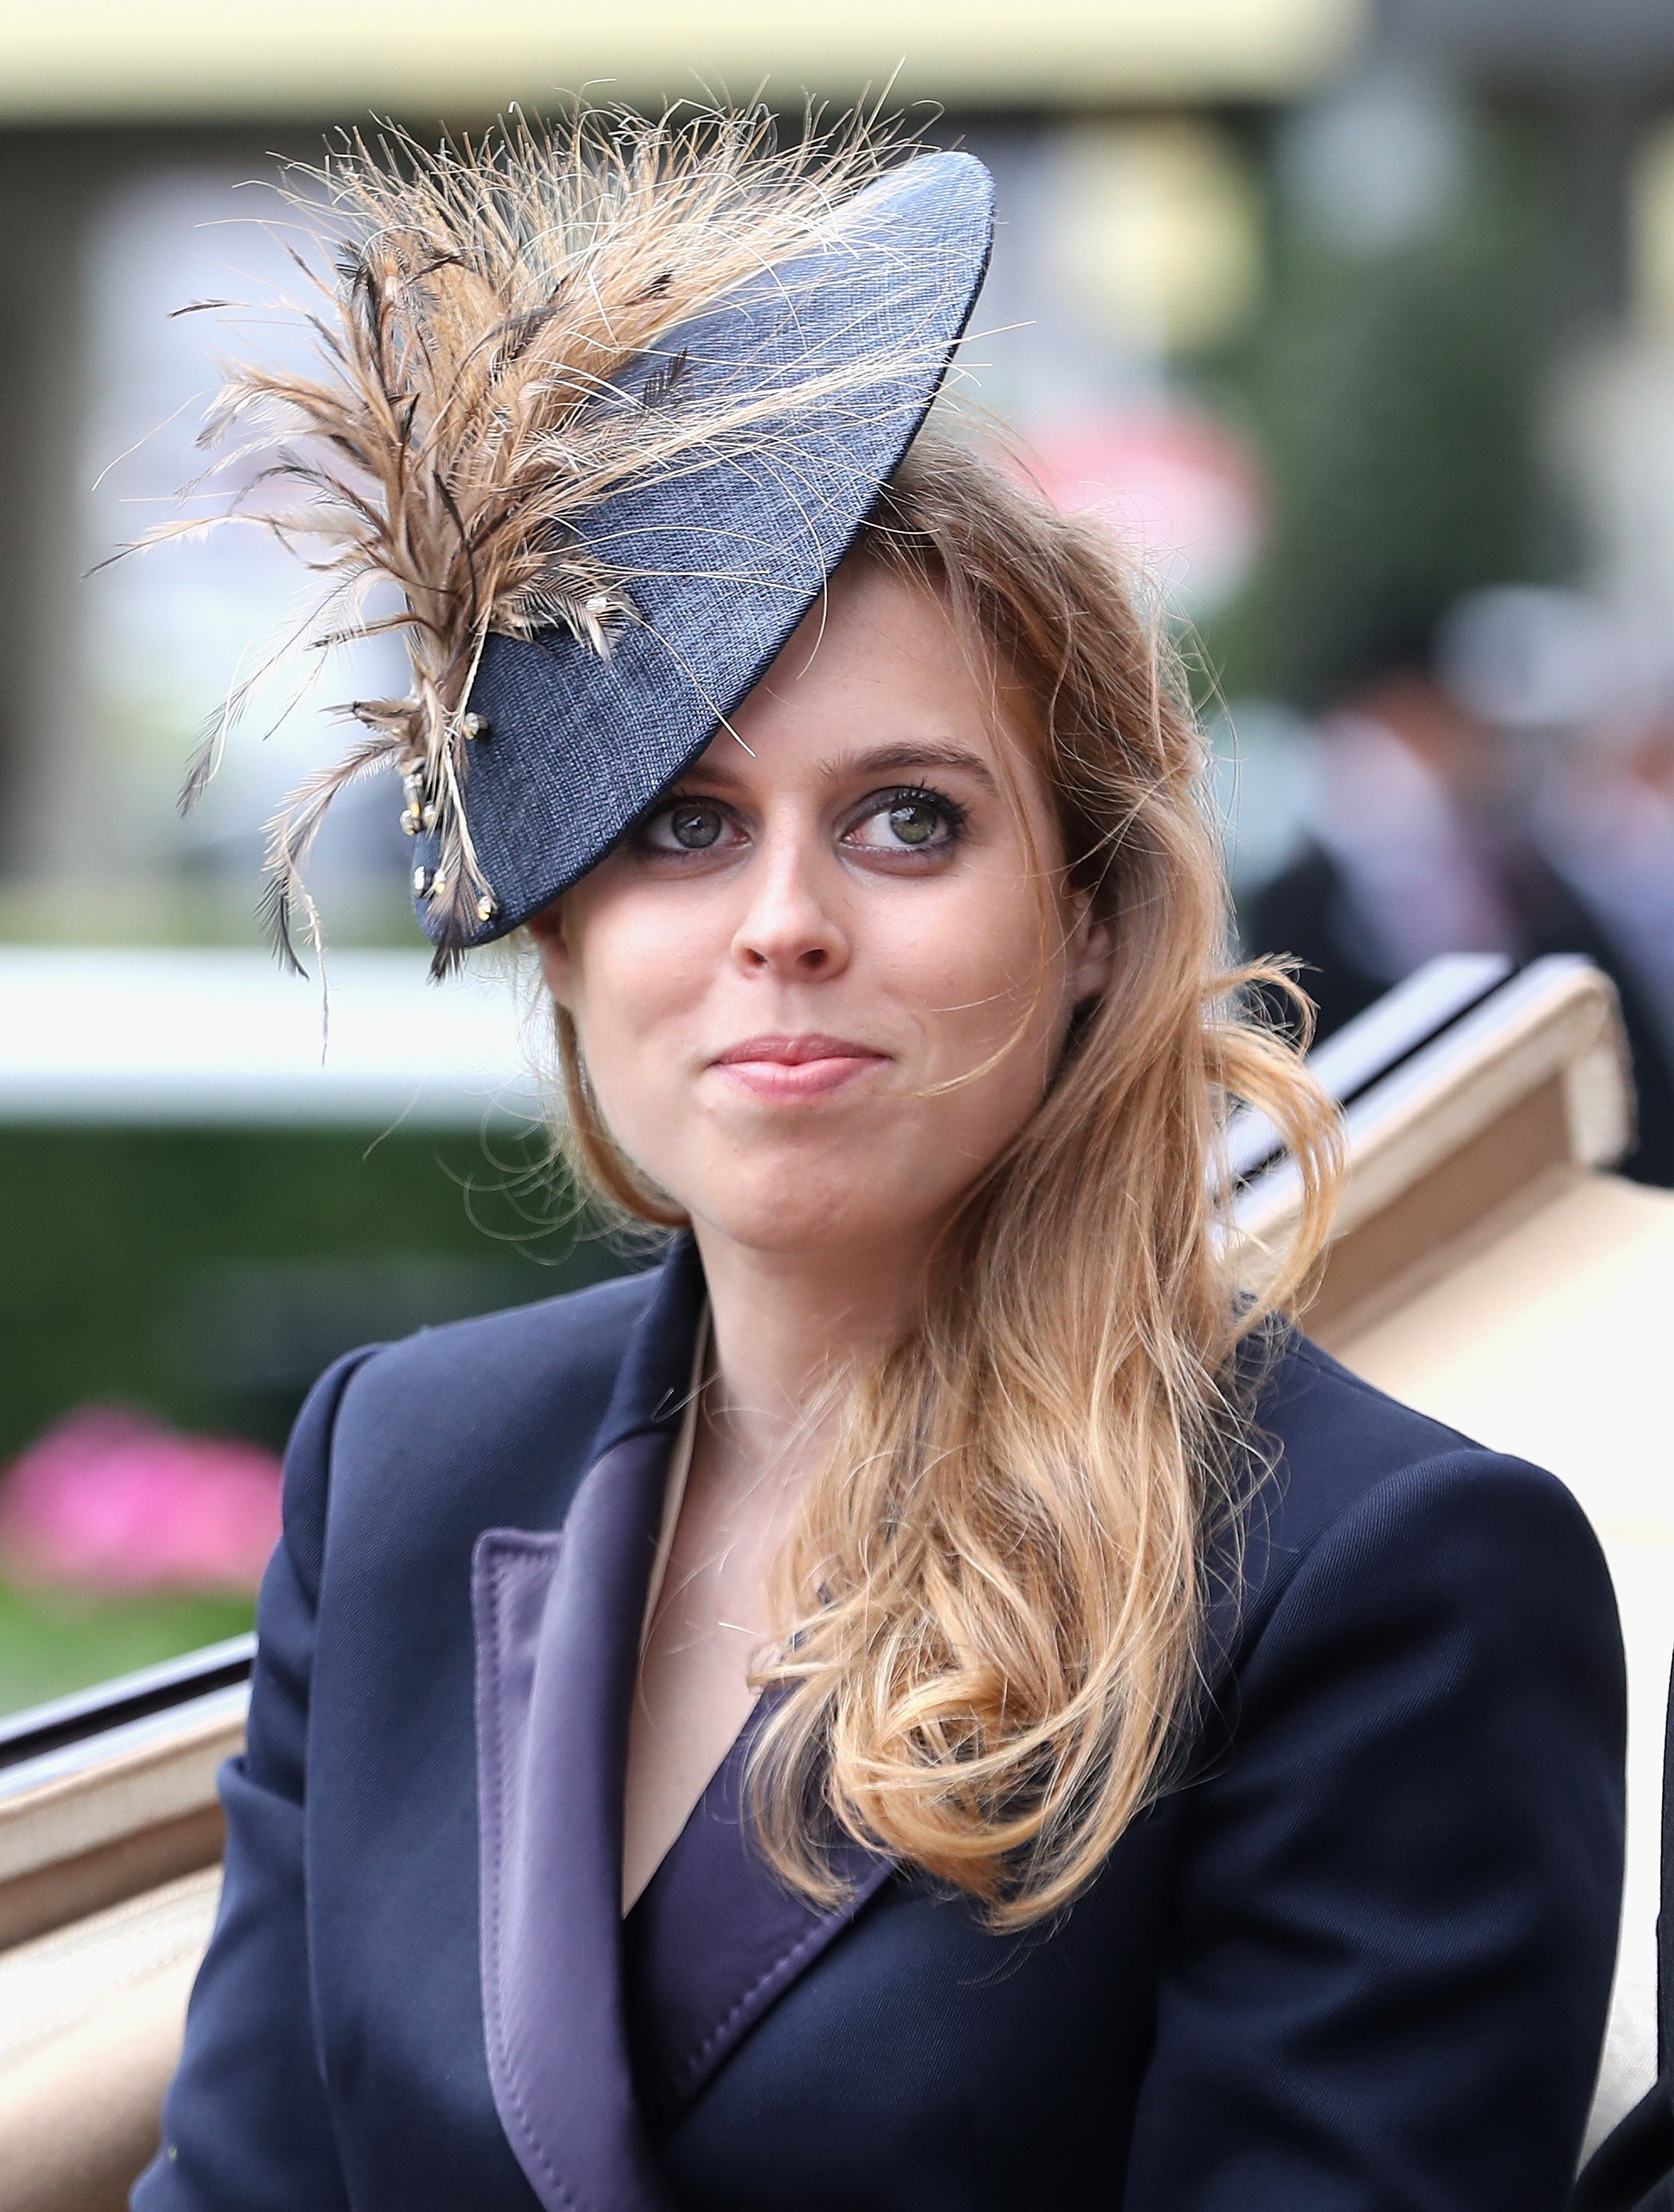 Princess Beatrice arrives in the parade ring at Royal Ascot 2016 at Ascot Racecourse on June 14, 2016 in Ascot, England.| Source: Getty Images